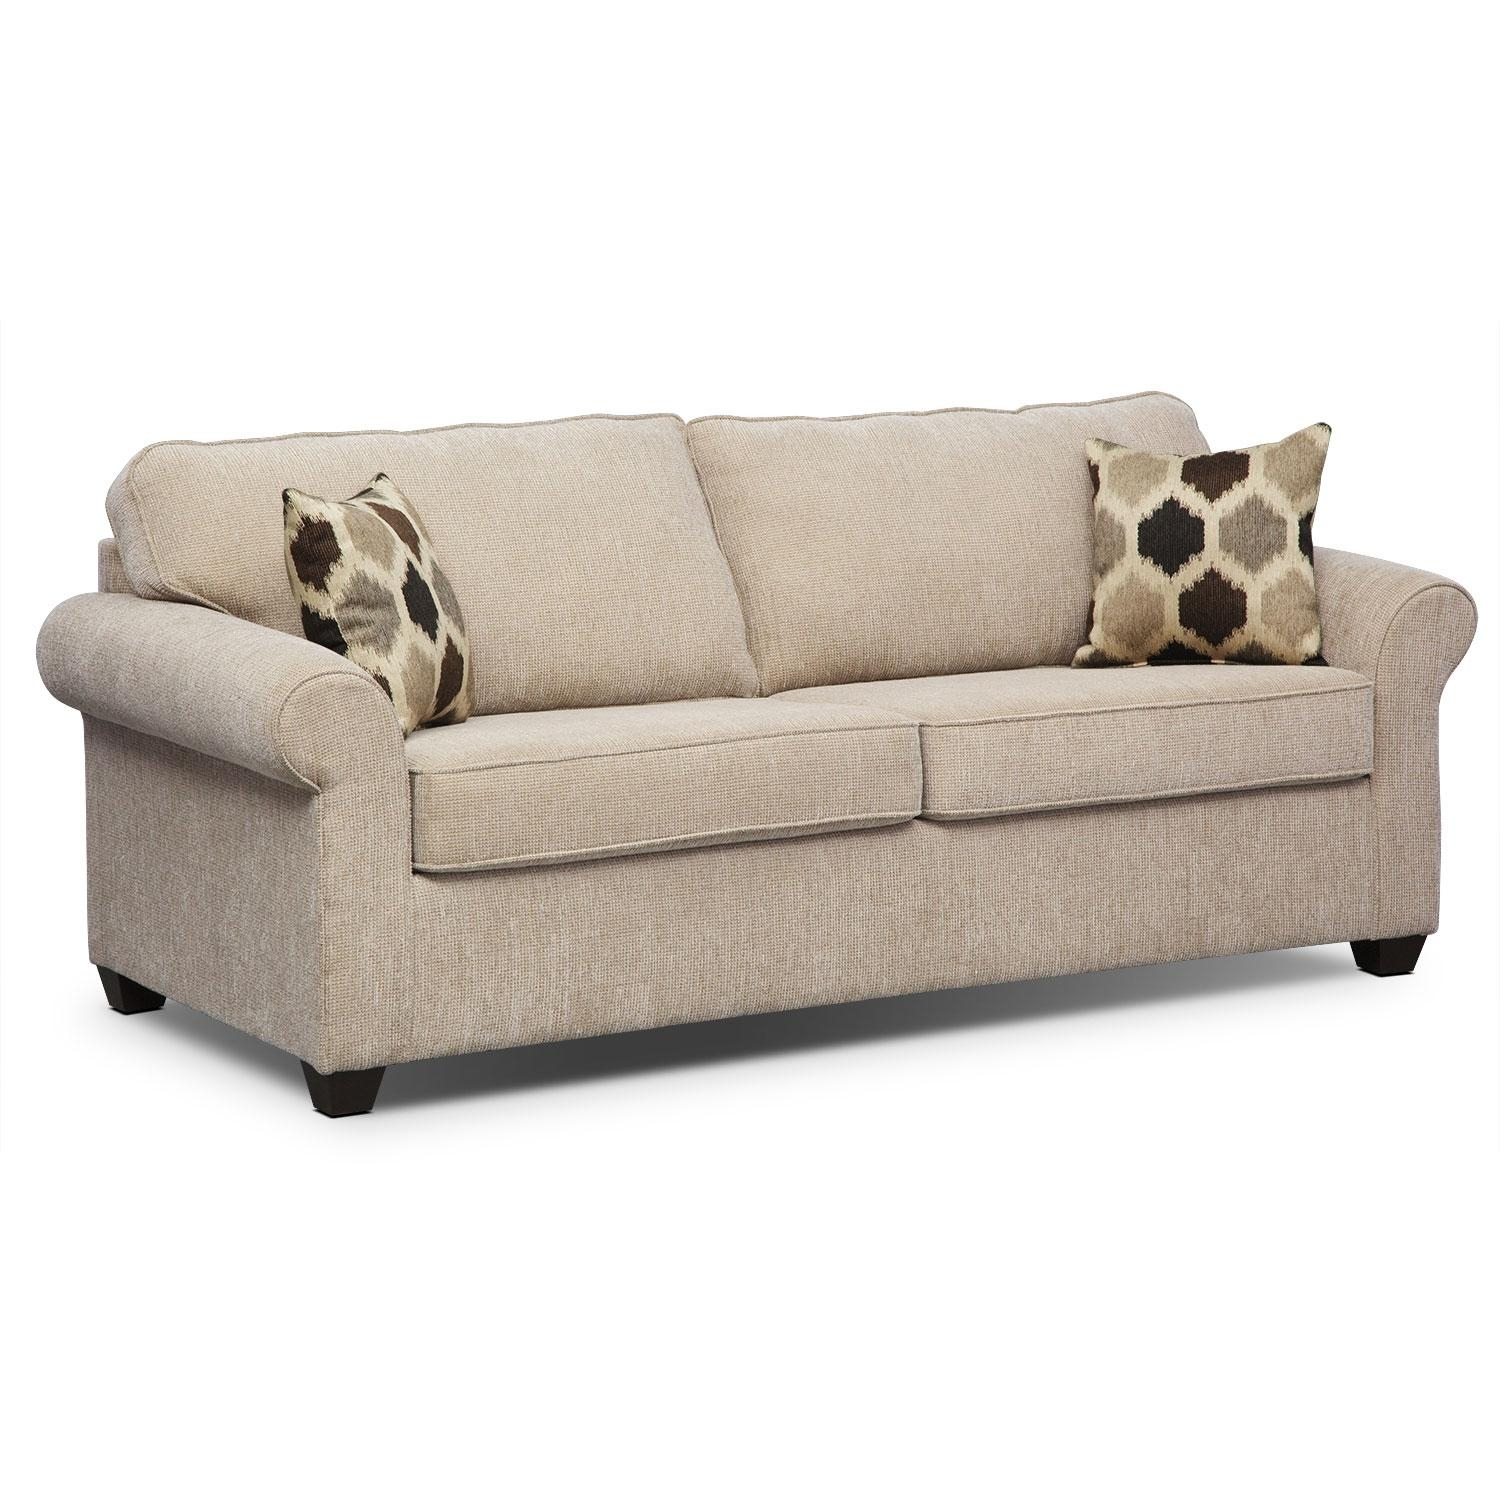 Queen Size Sleeper Sofa – Interior Design with regard to Queen Convertible Sofas